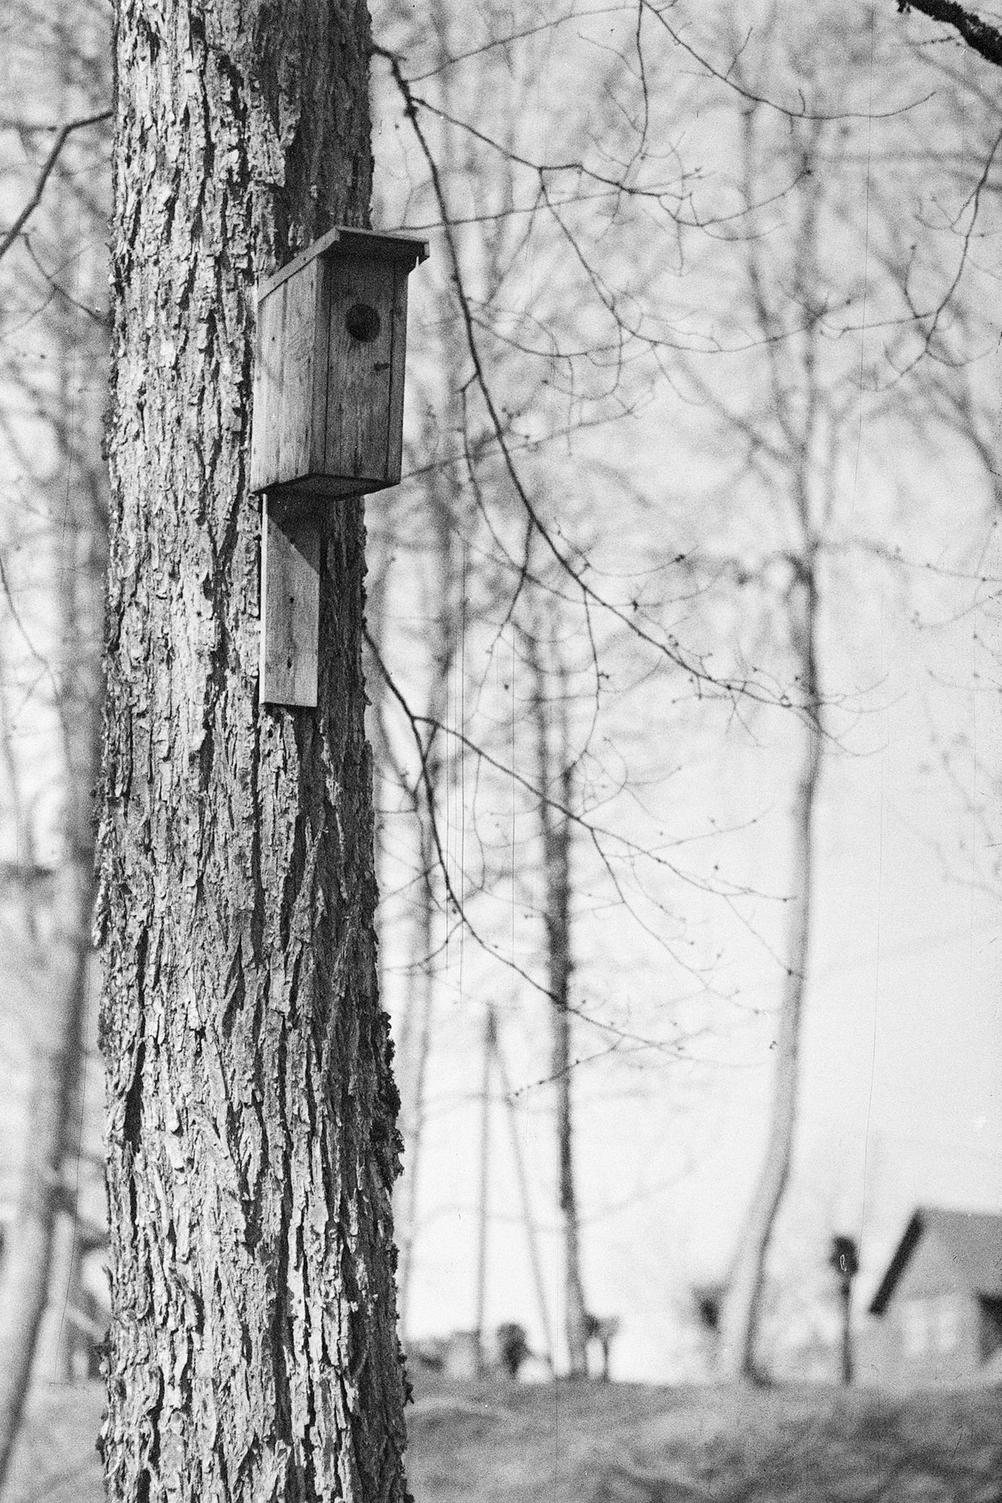 Black and white photo of a bird house on a tree.